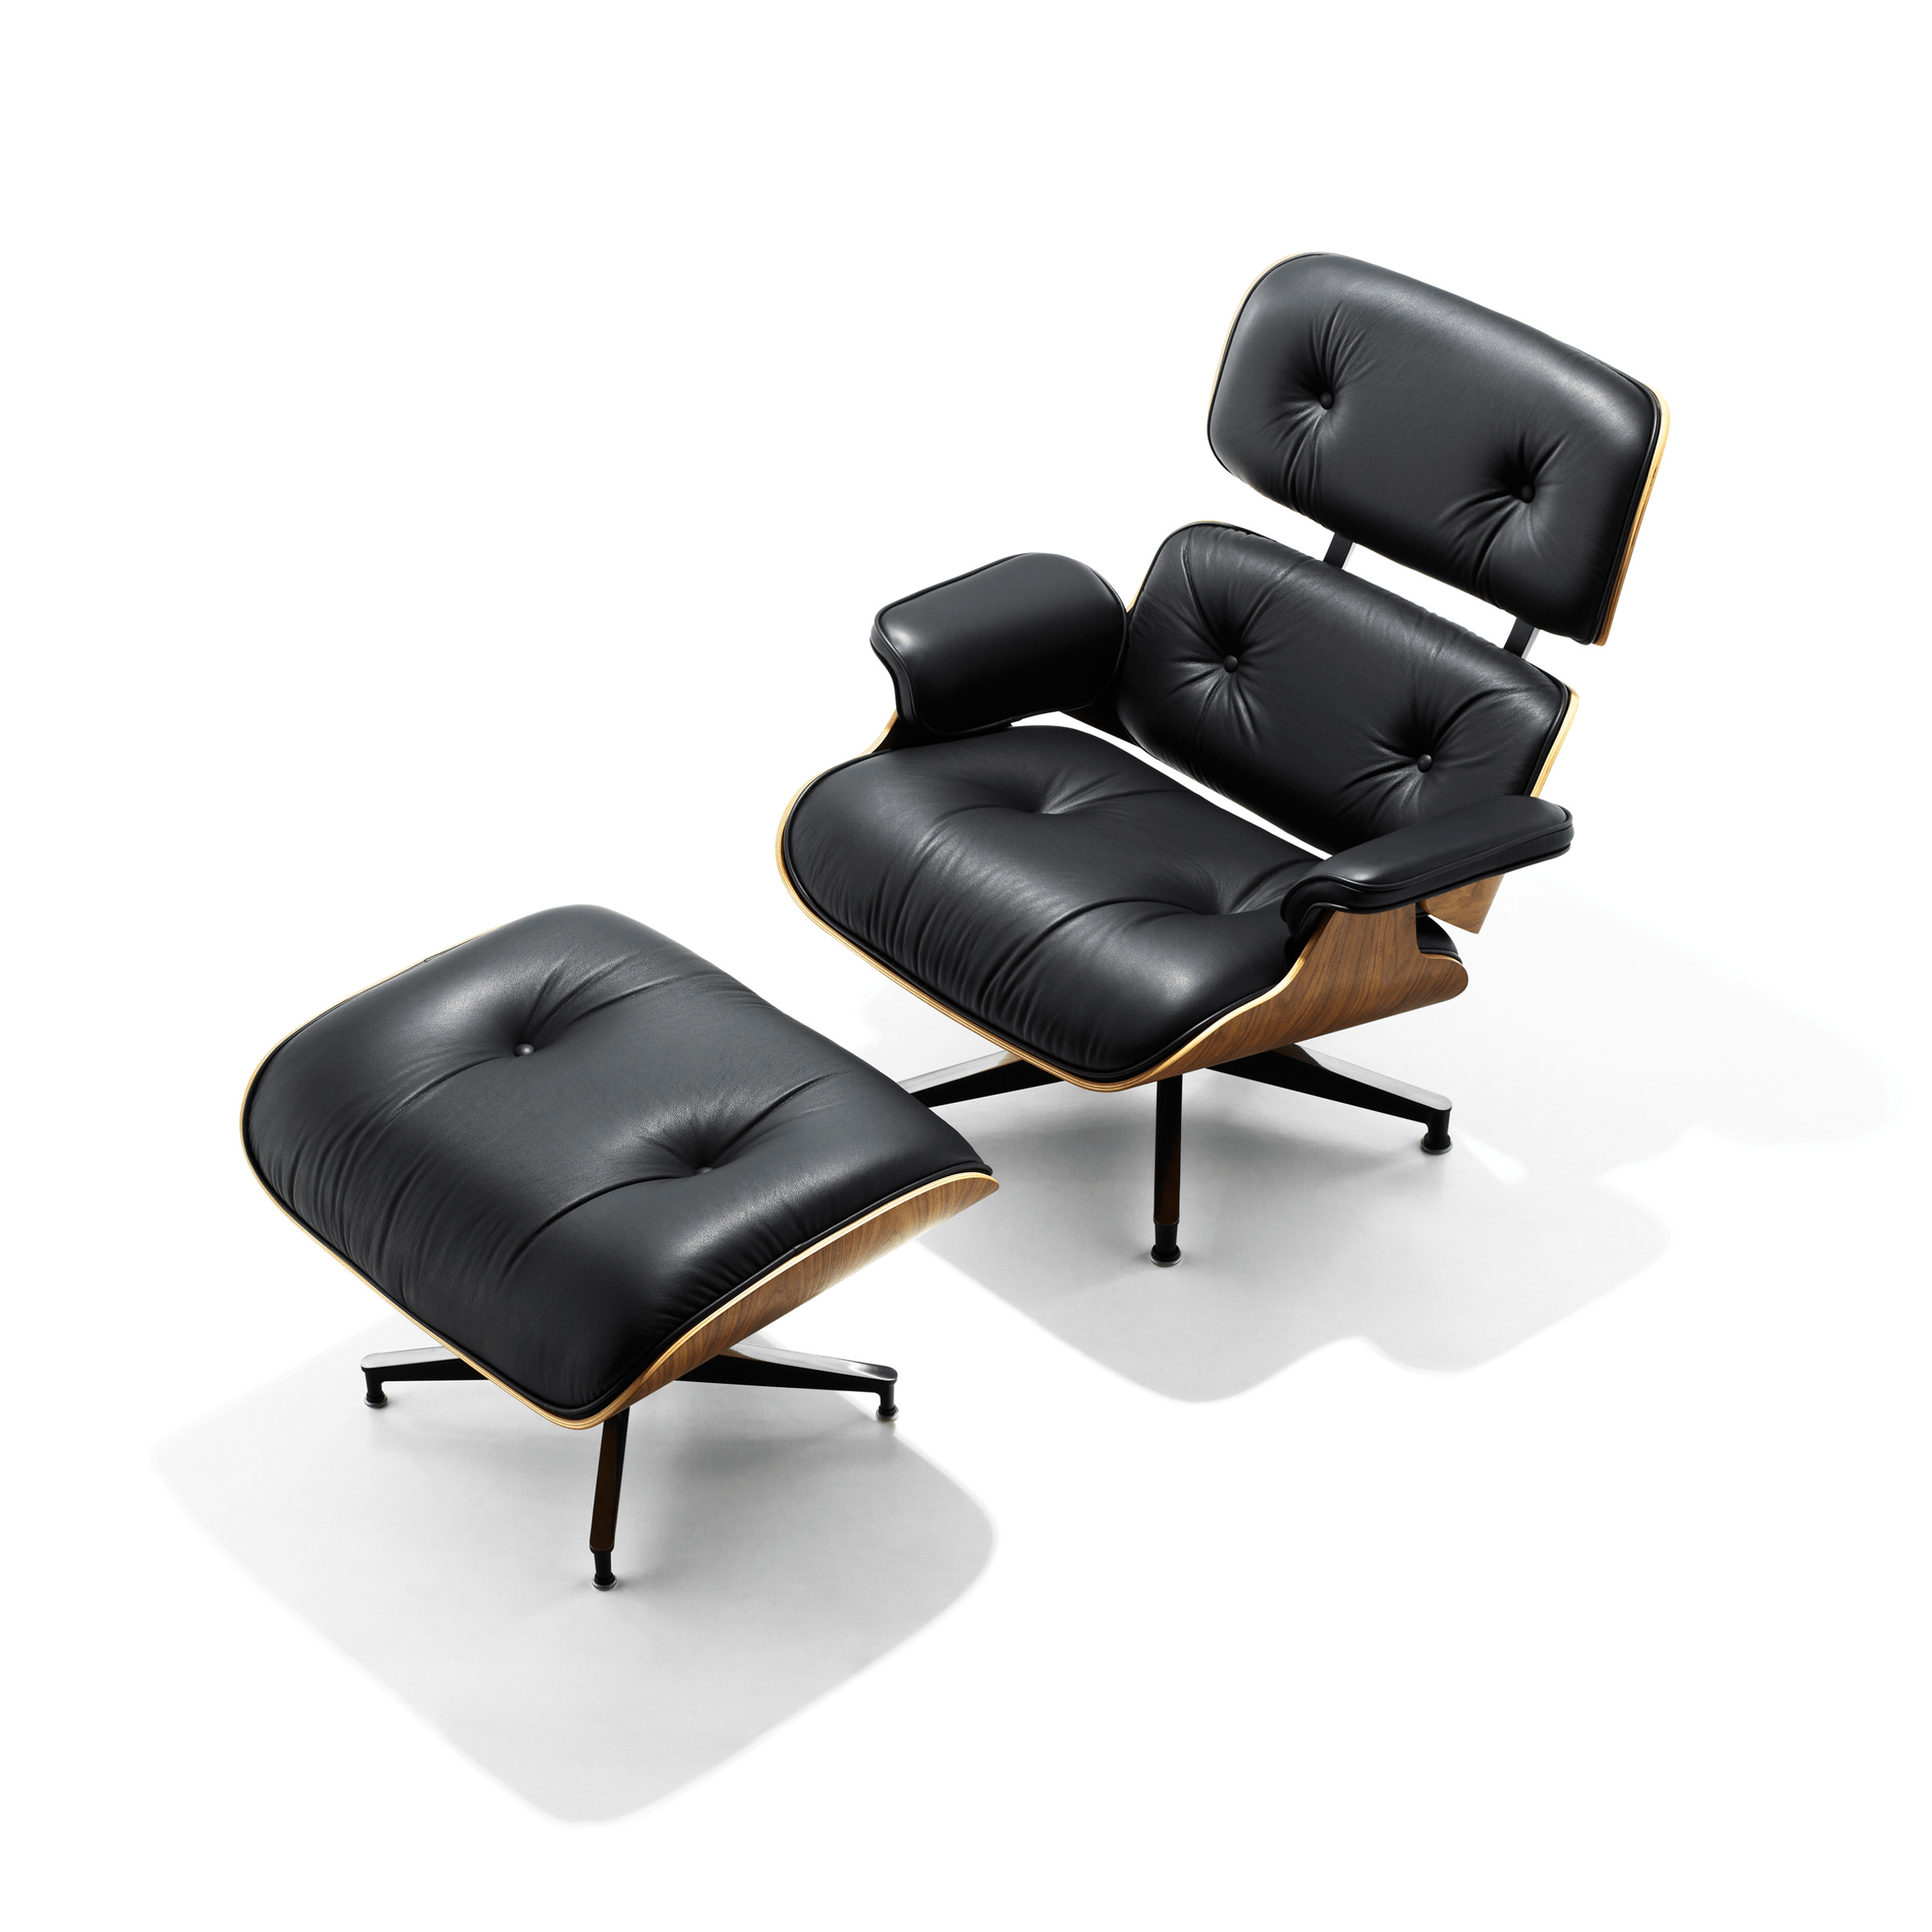 Vitra Charles Eames Chair Designapplause | Lounge Chair And Ottoman. Charles And Ray